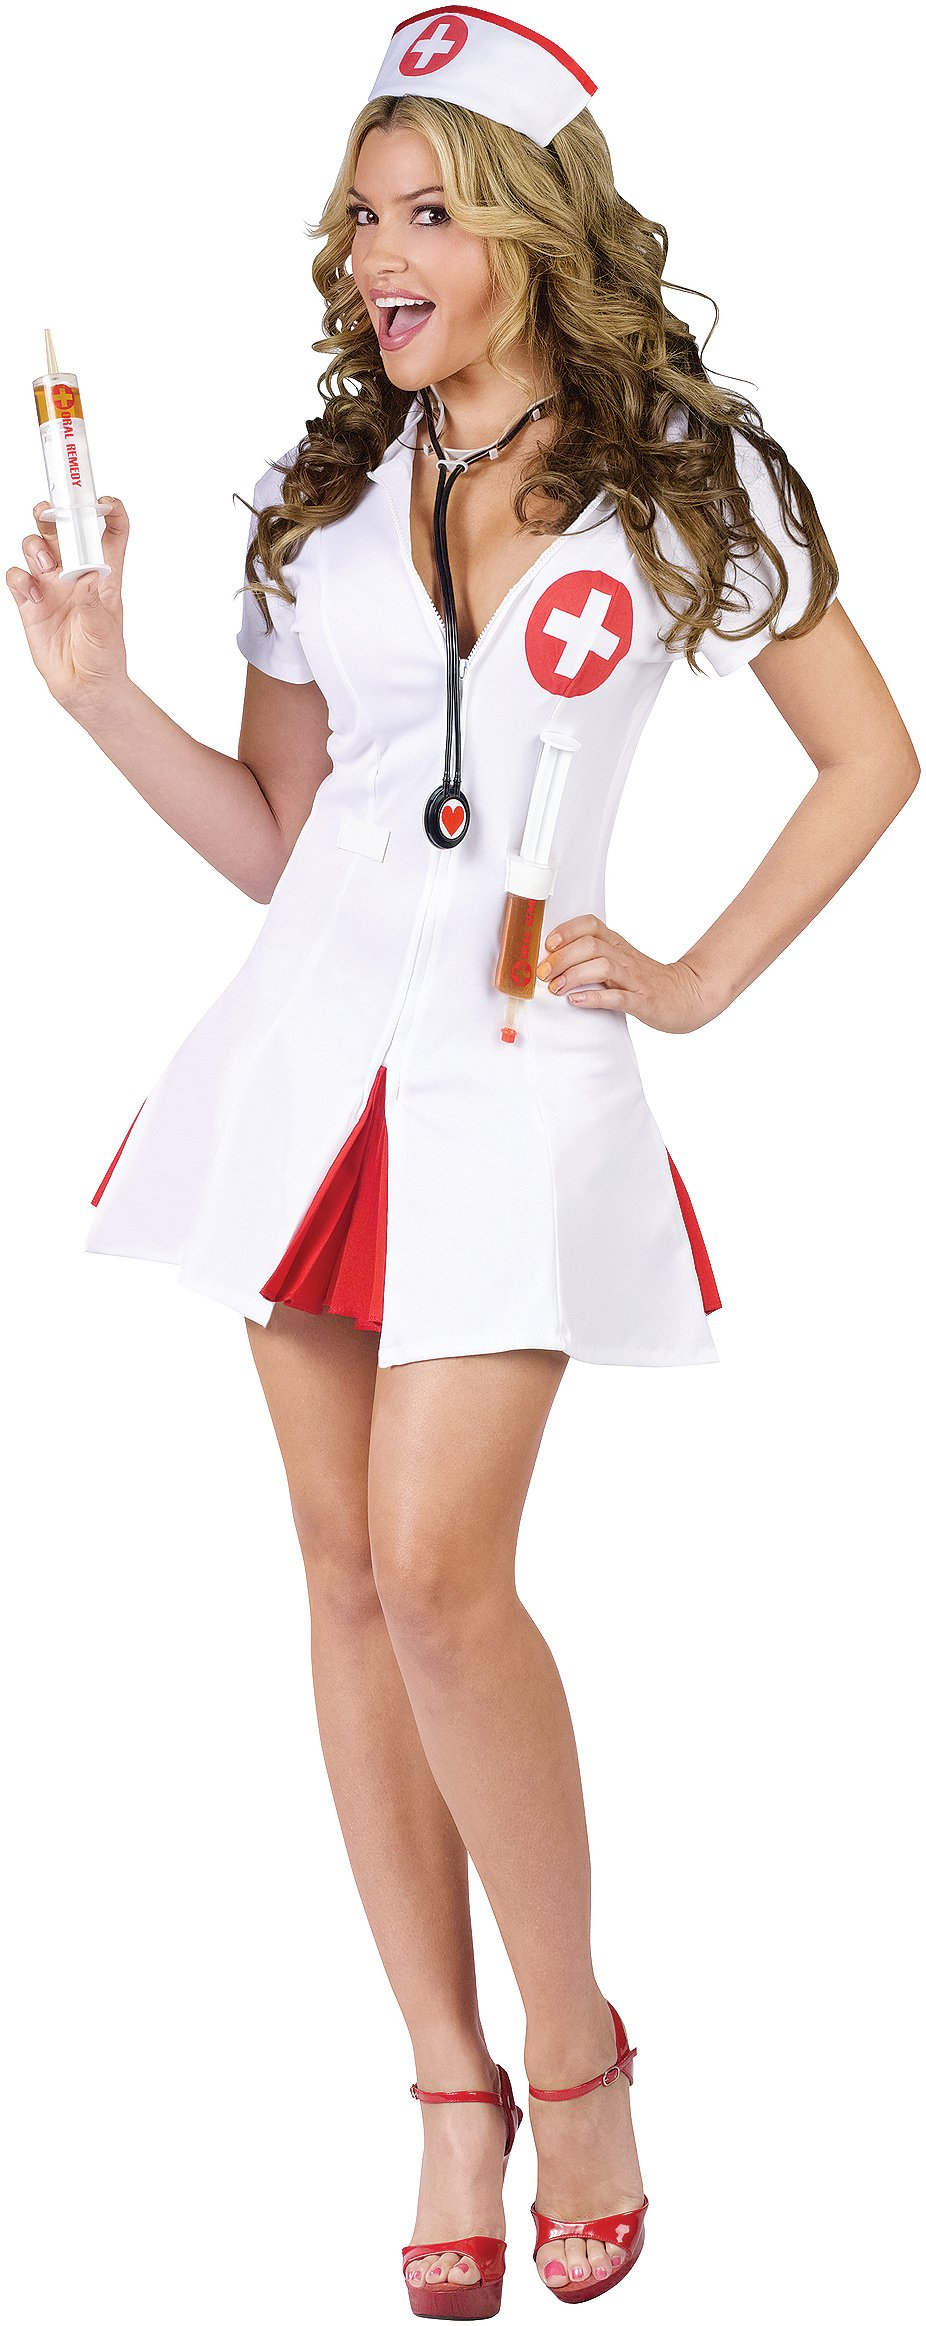 Sexiest Halloween Costumes Of 2013 Therichest